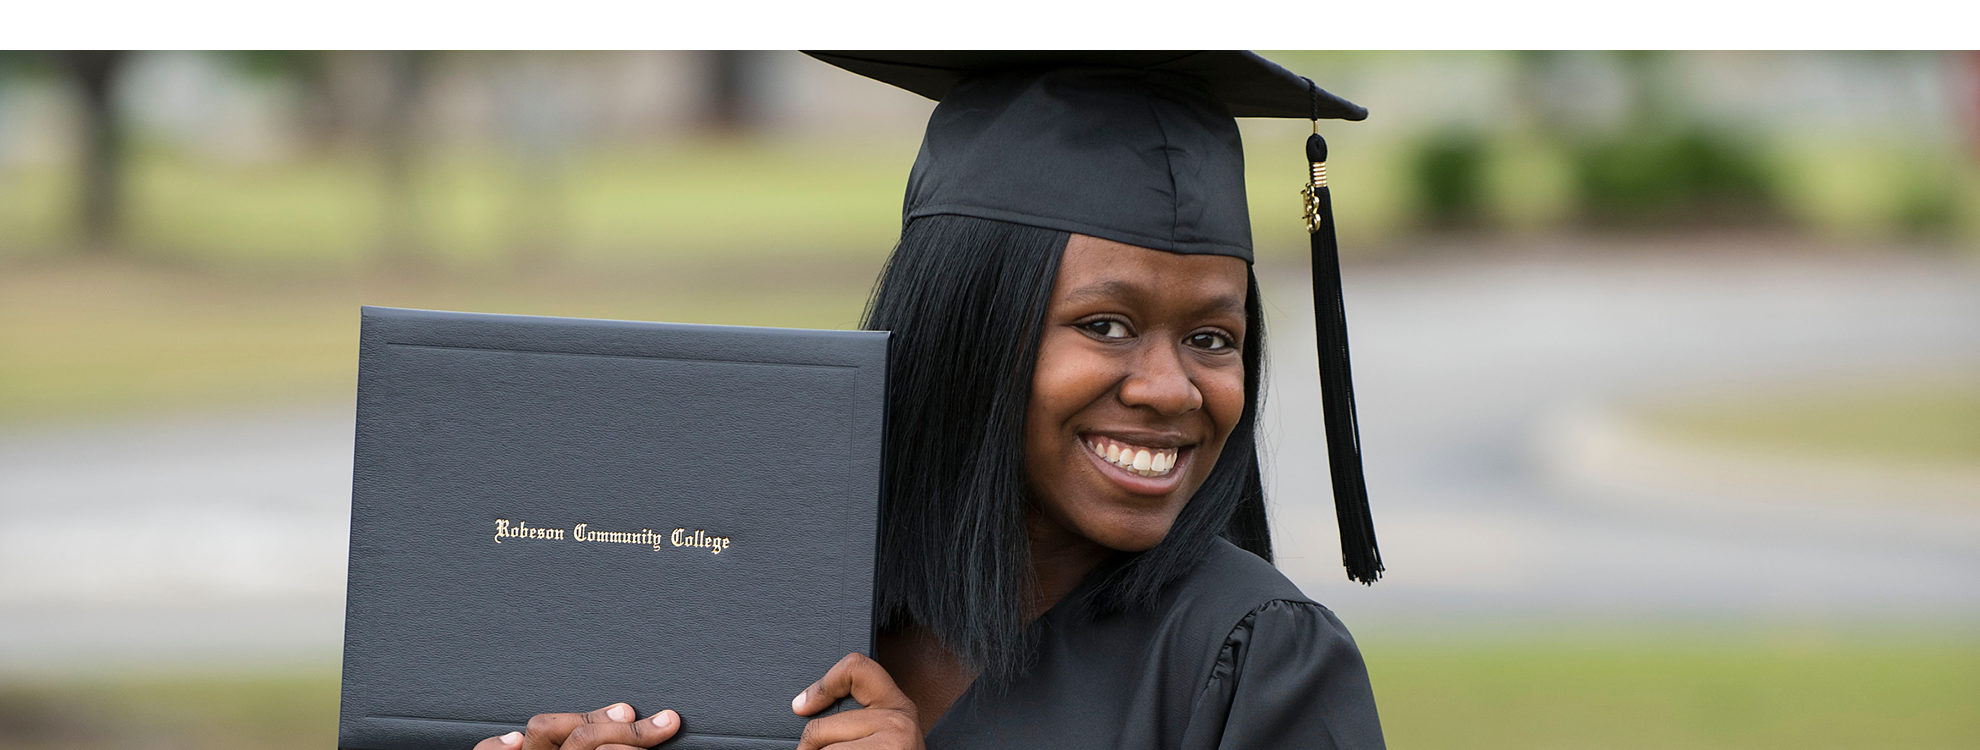 Robeson Community College : Robeson Community College